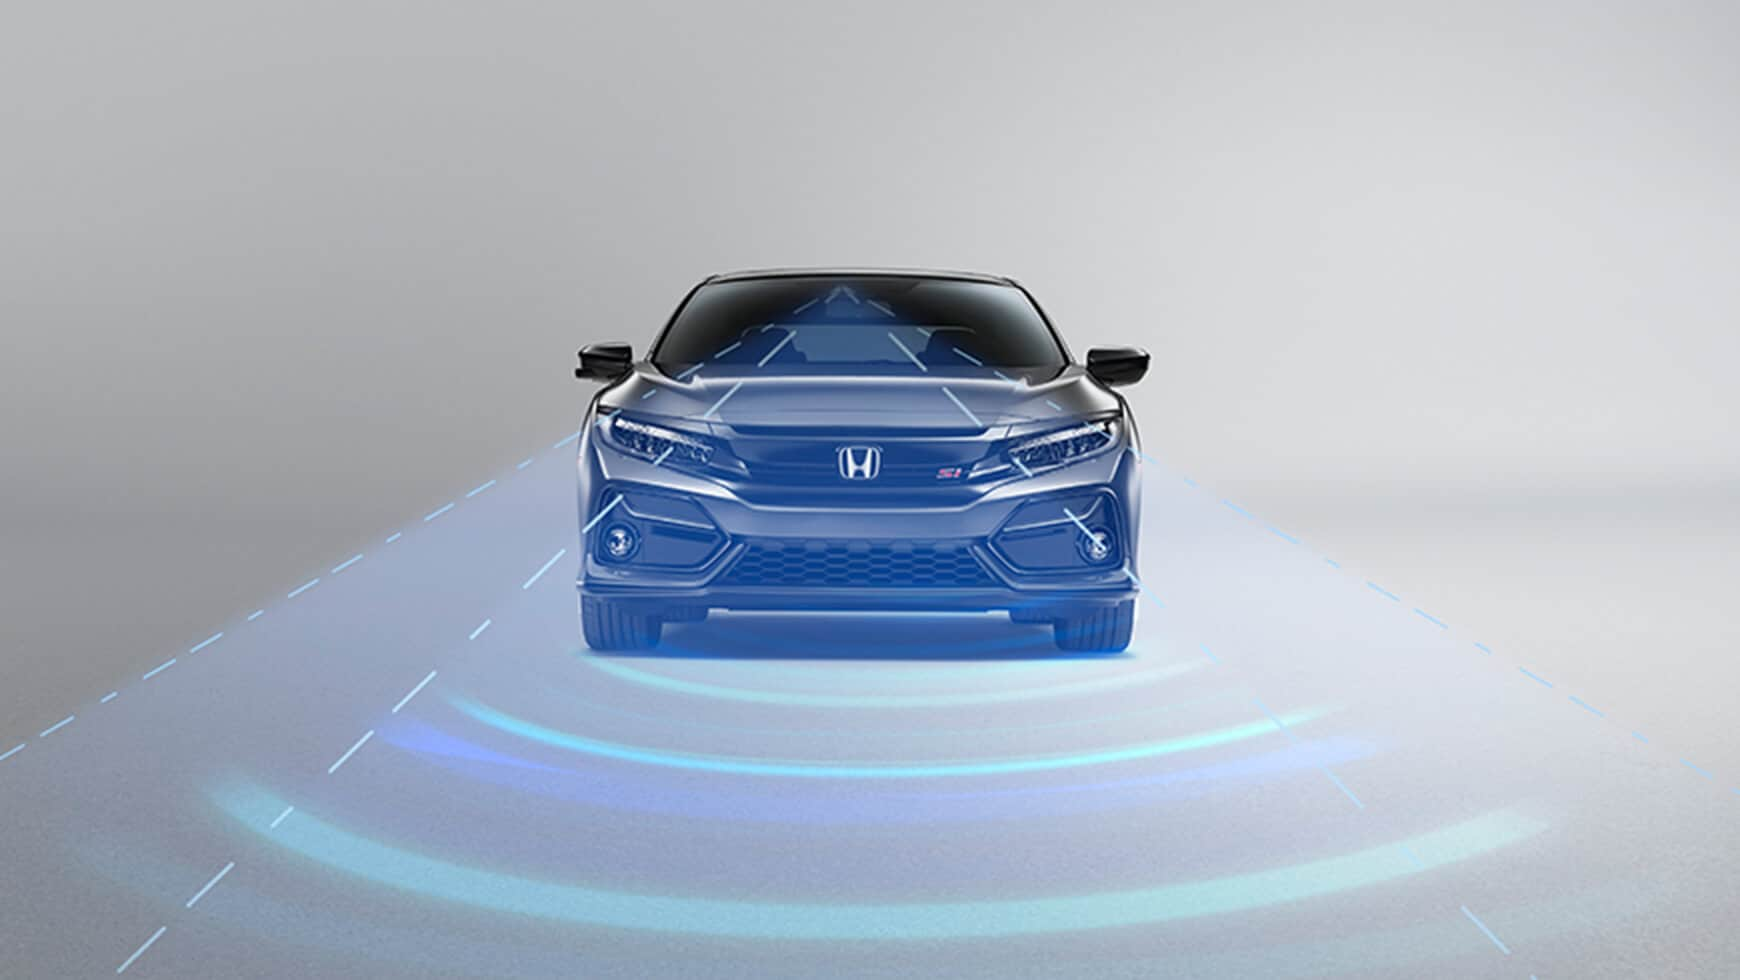 Front view of 2020 Honda Civic Si Sedan in Modern Steel Metallic demonstrating Adaptive Cruise Control (ACC).